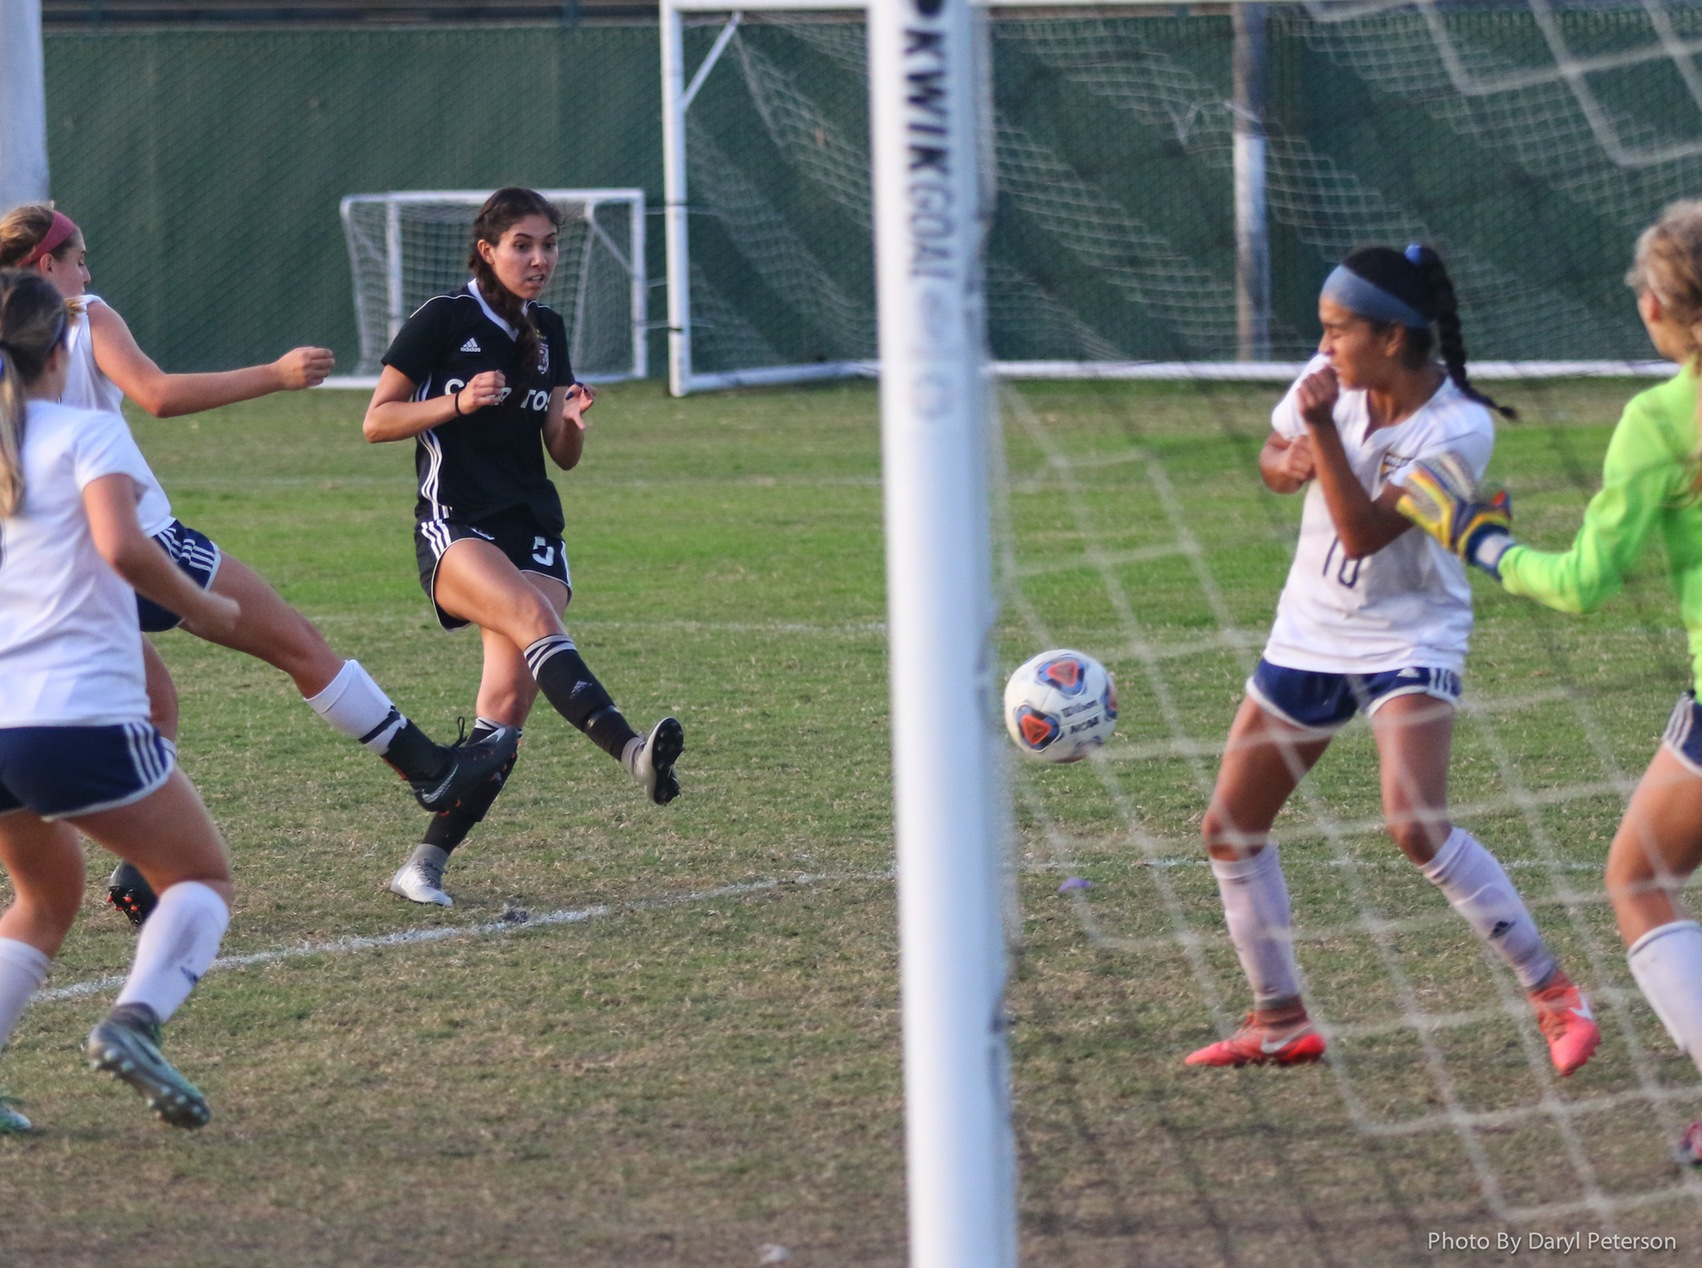 Erika Garcia scores the game-winning goal for the Falcons in the playoffs